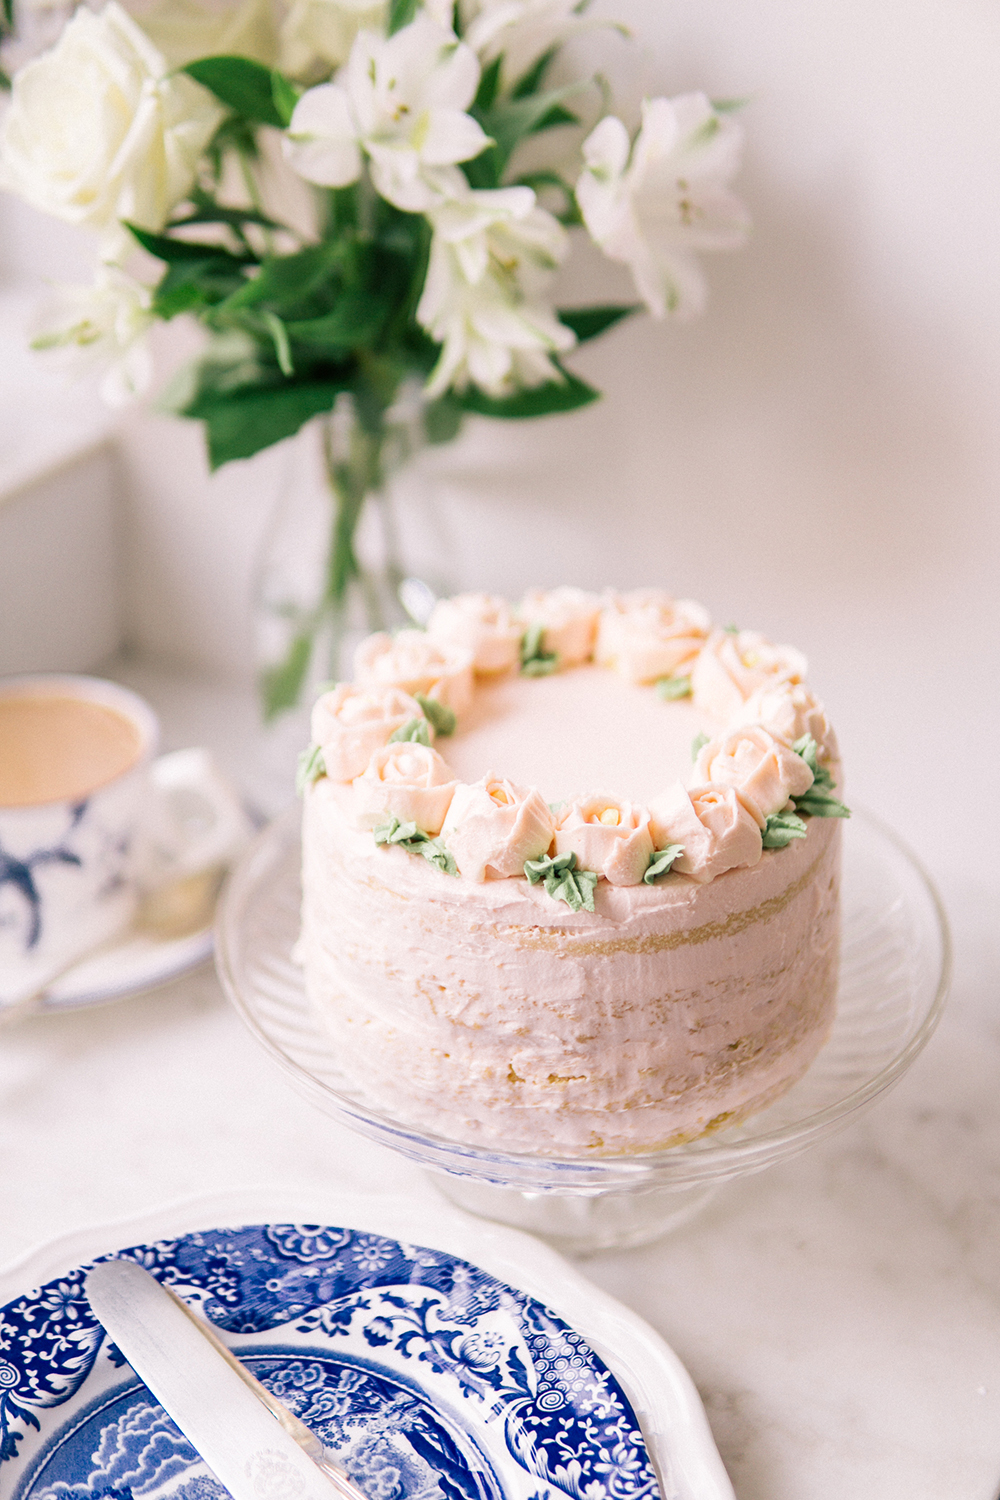 strawberry-rose-naked-cake-recipe-Barely-There-Beauty-blog-food-photography